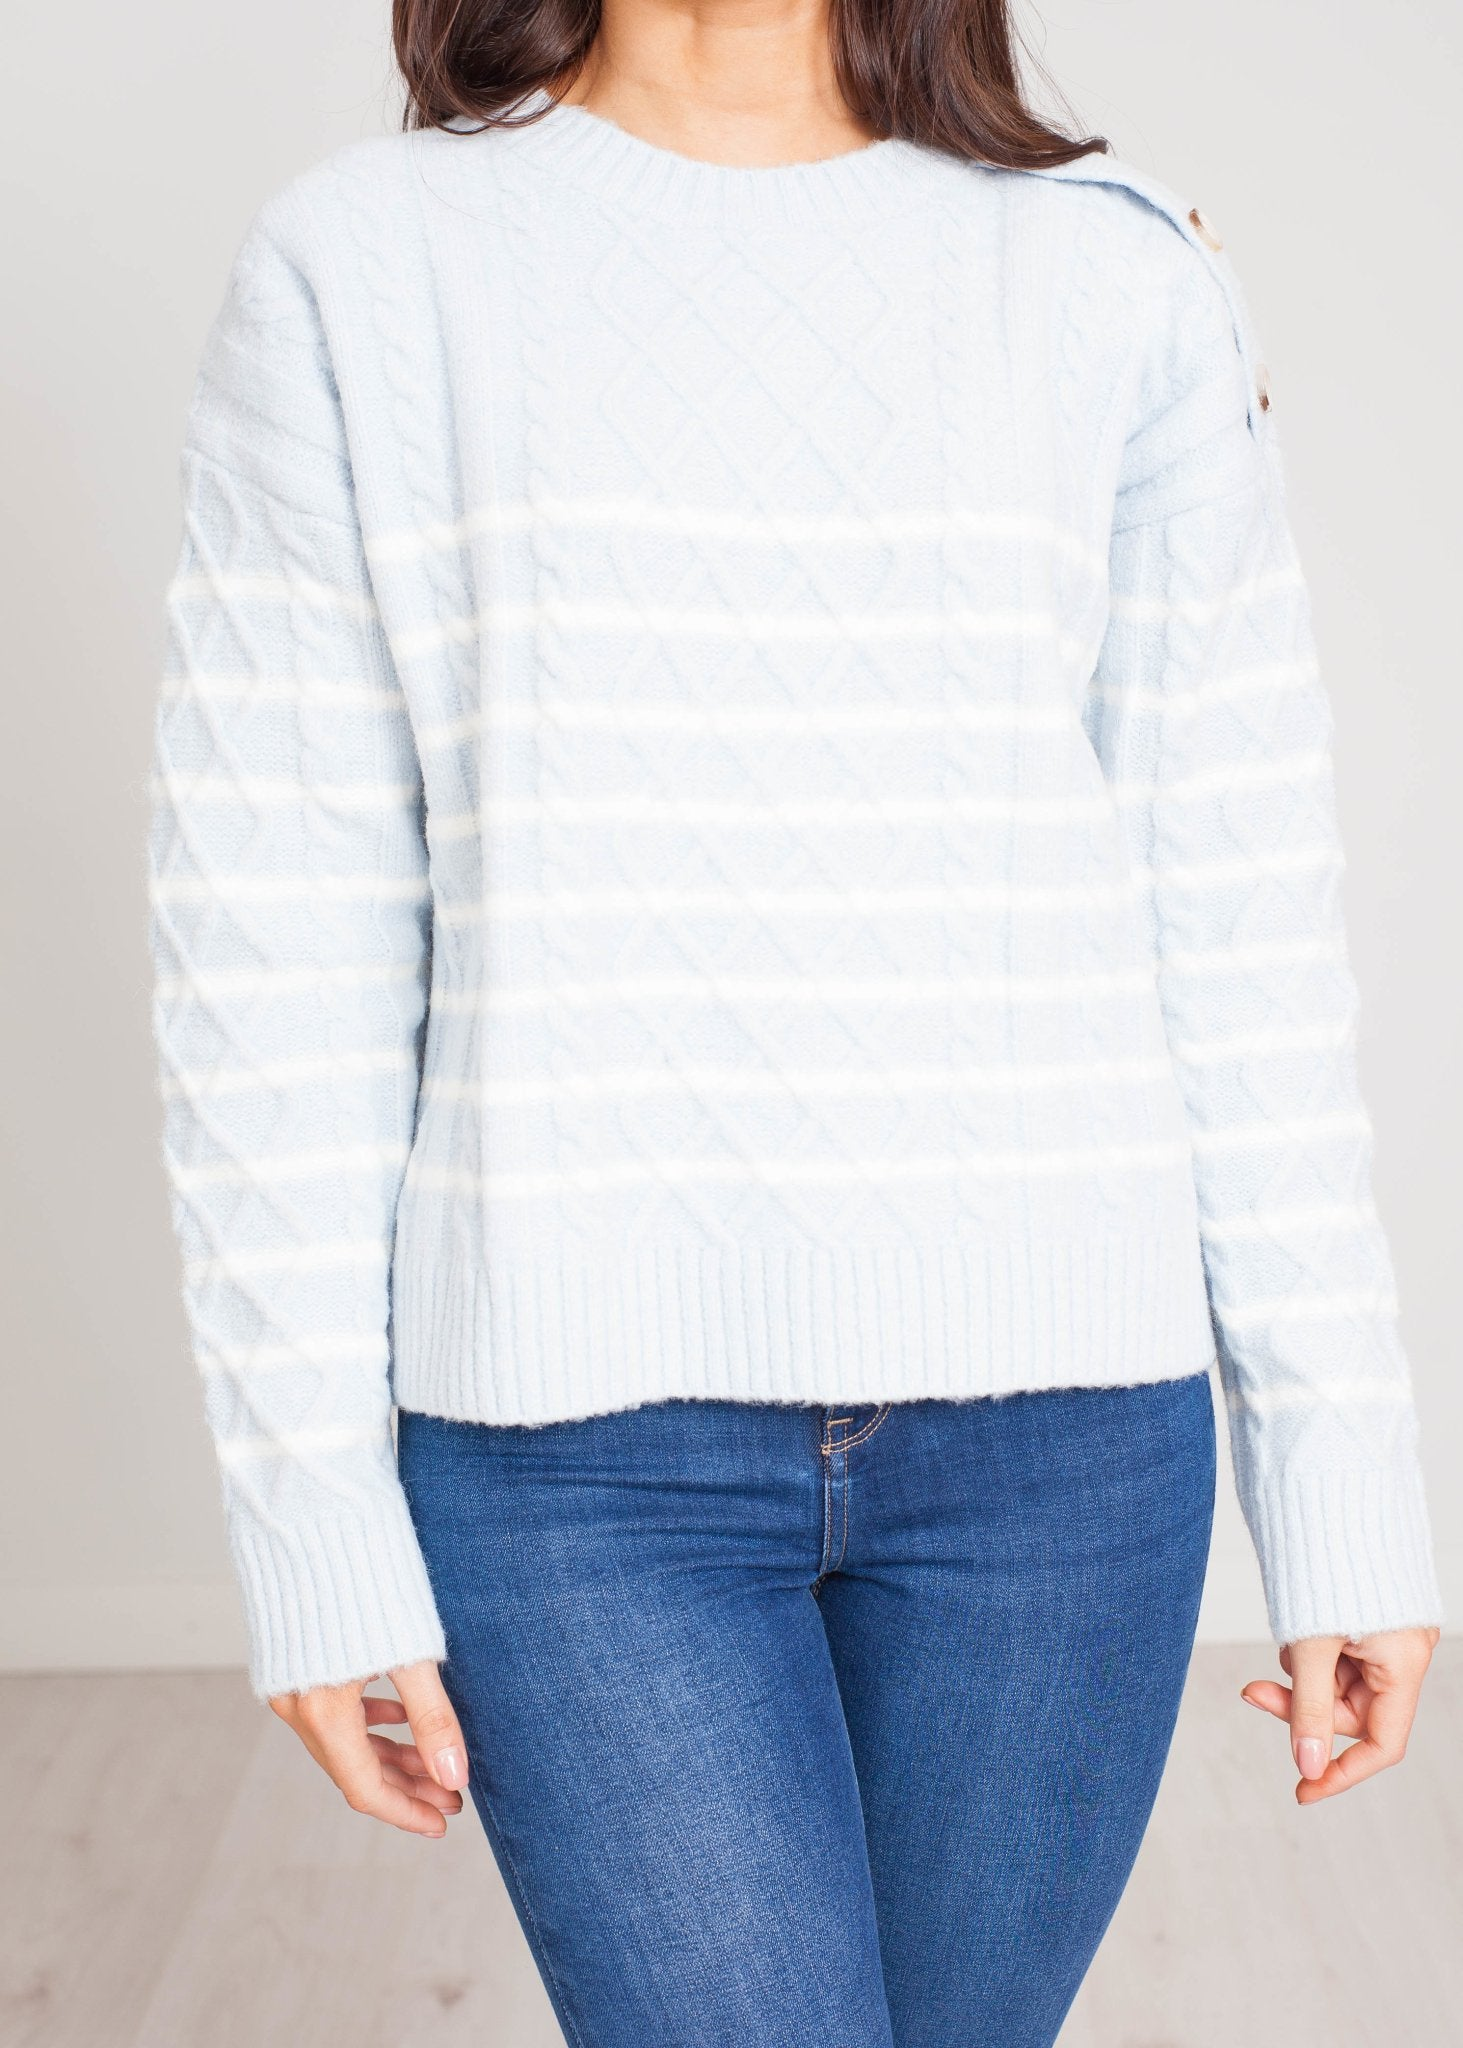 Cherie Cable Knit Jumper In Ice Blue - The Walk in Wardrobe